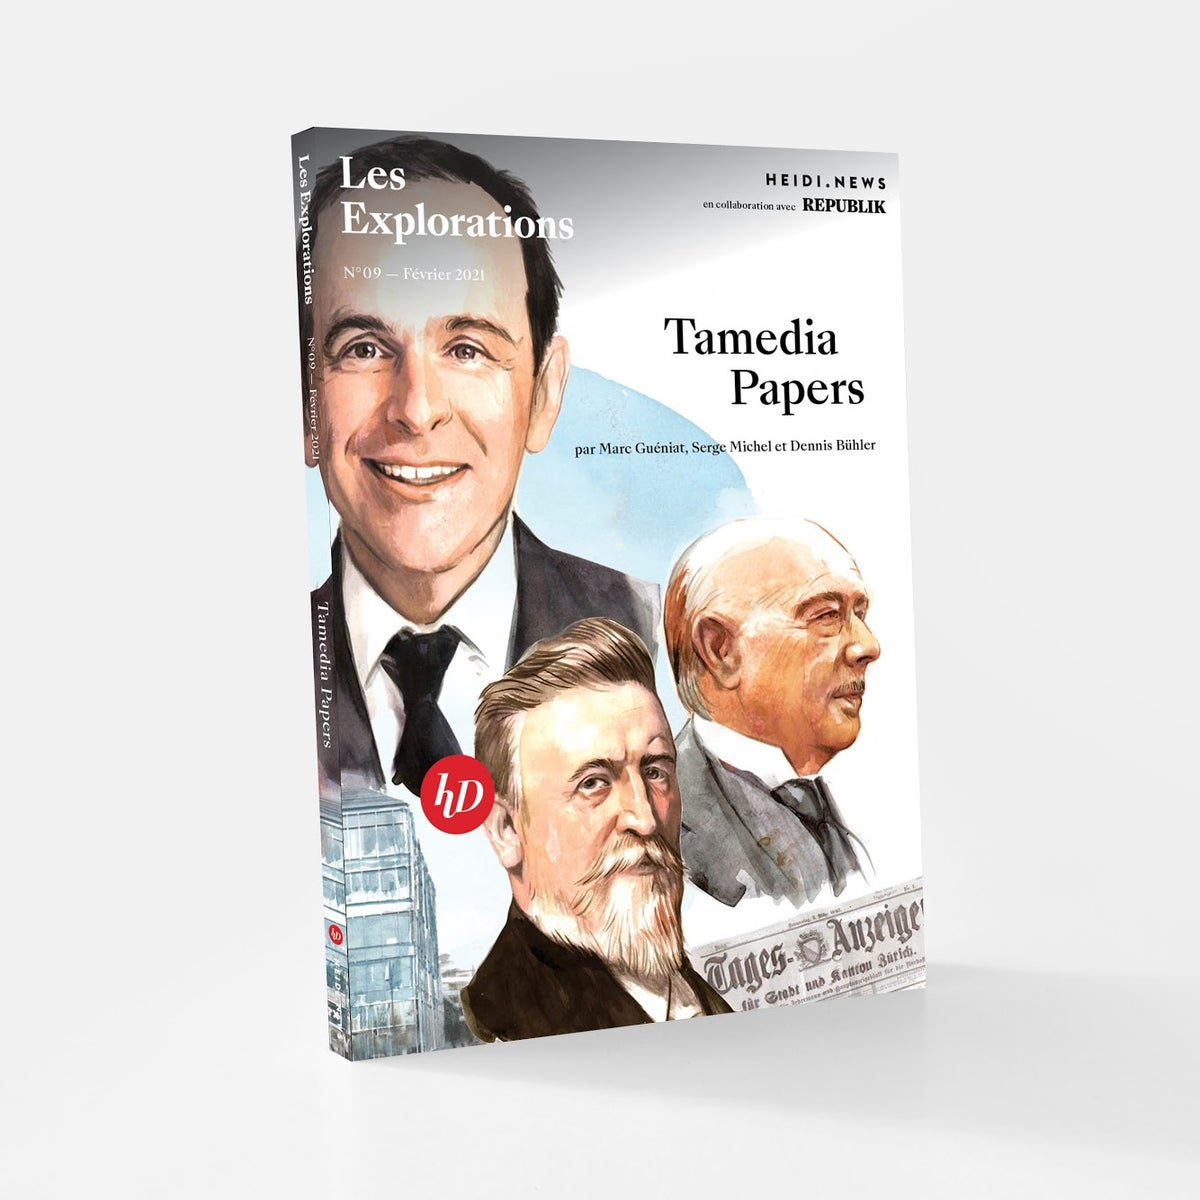 Image of Tamedia Papers